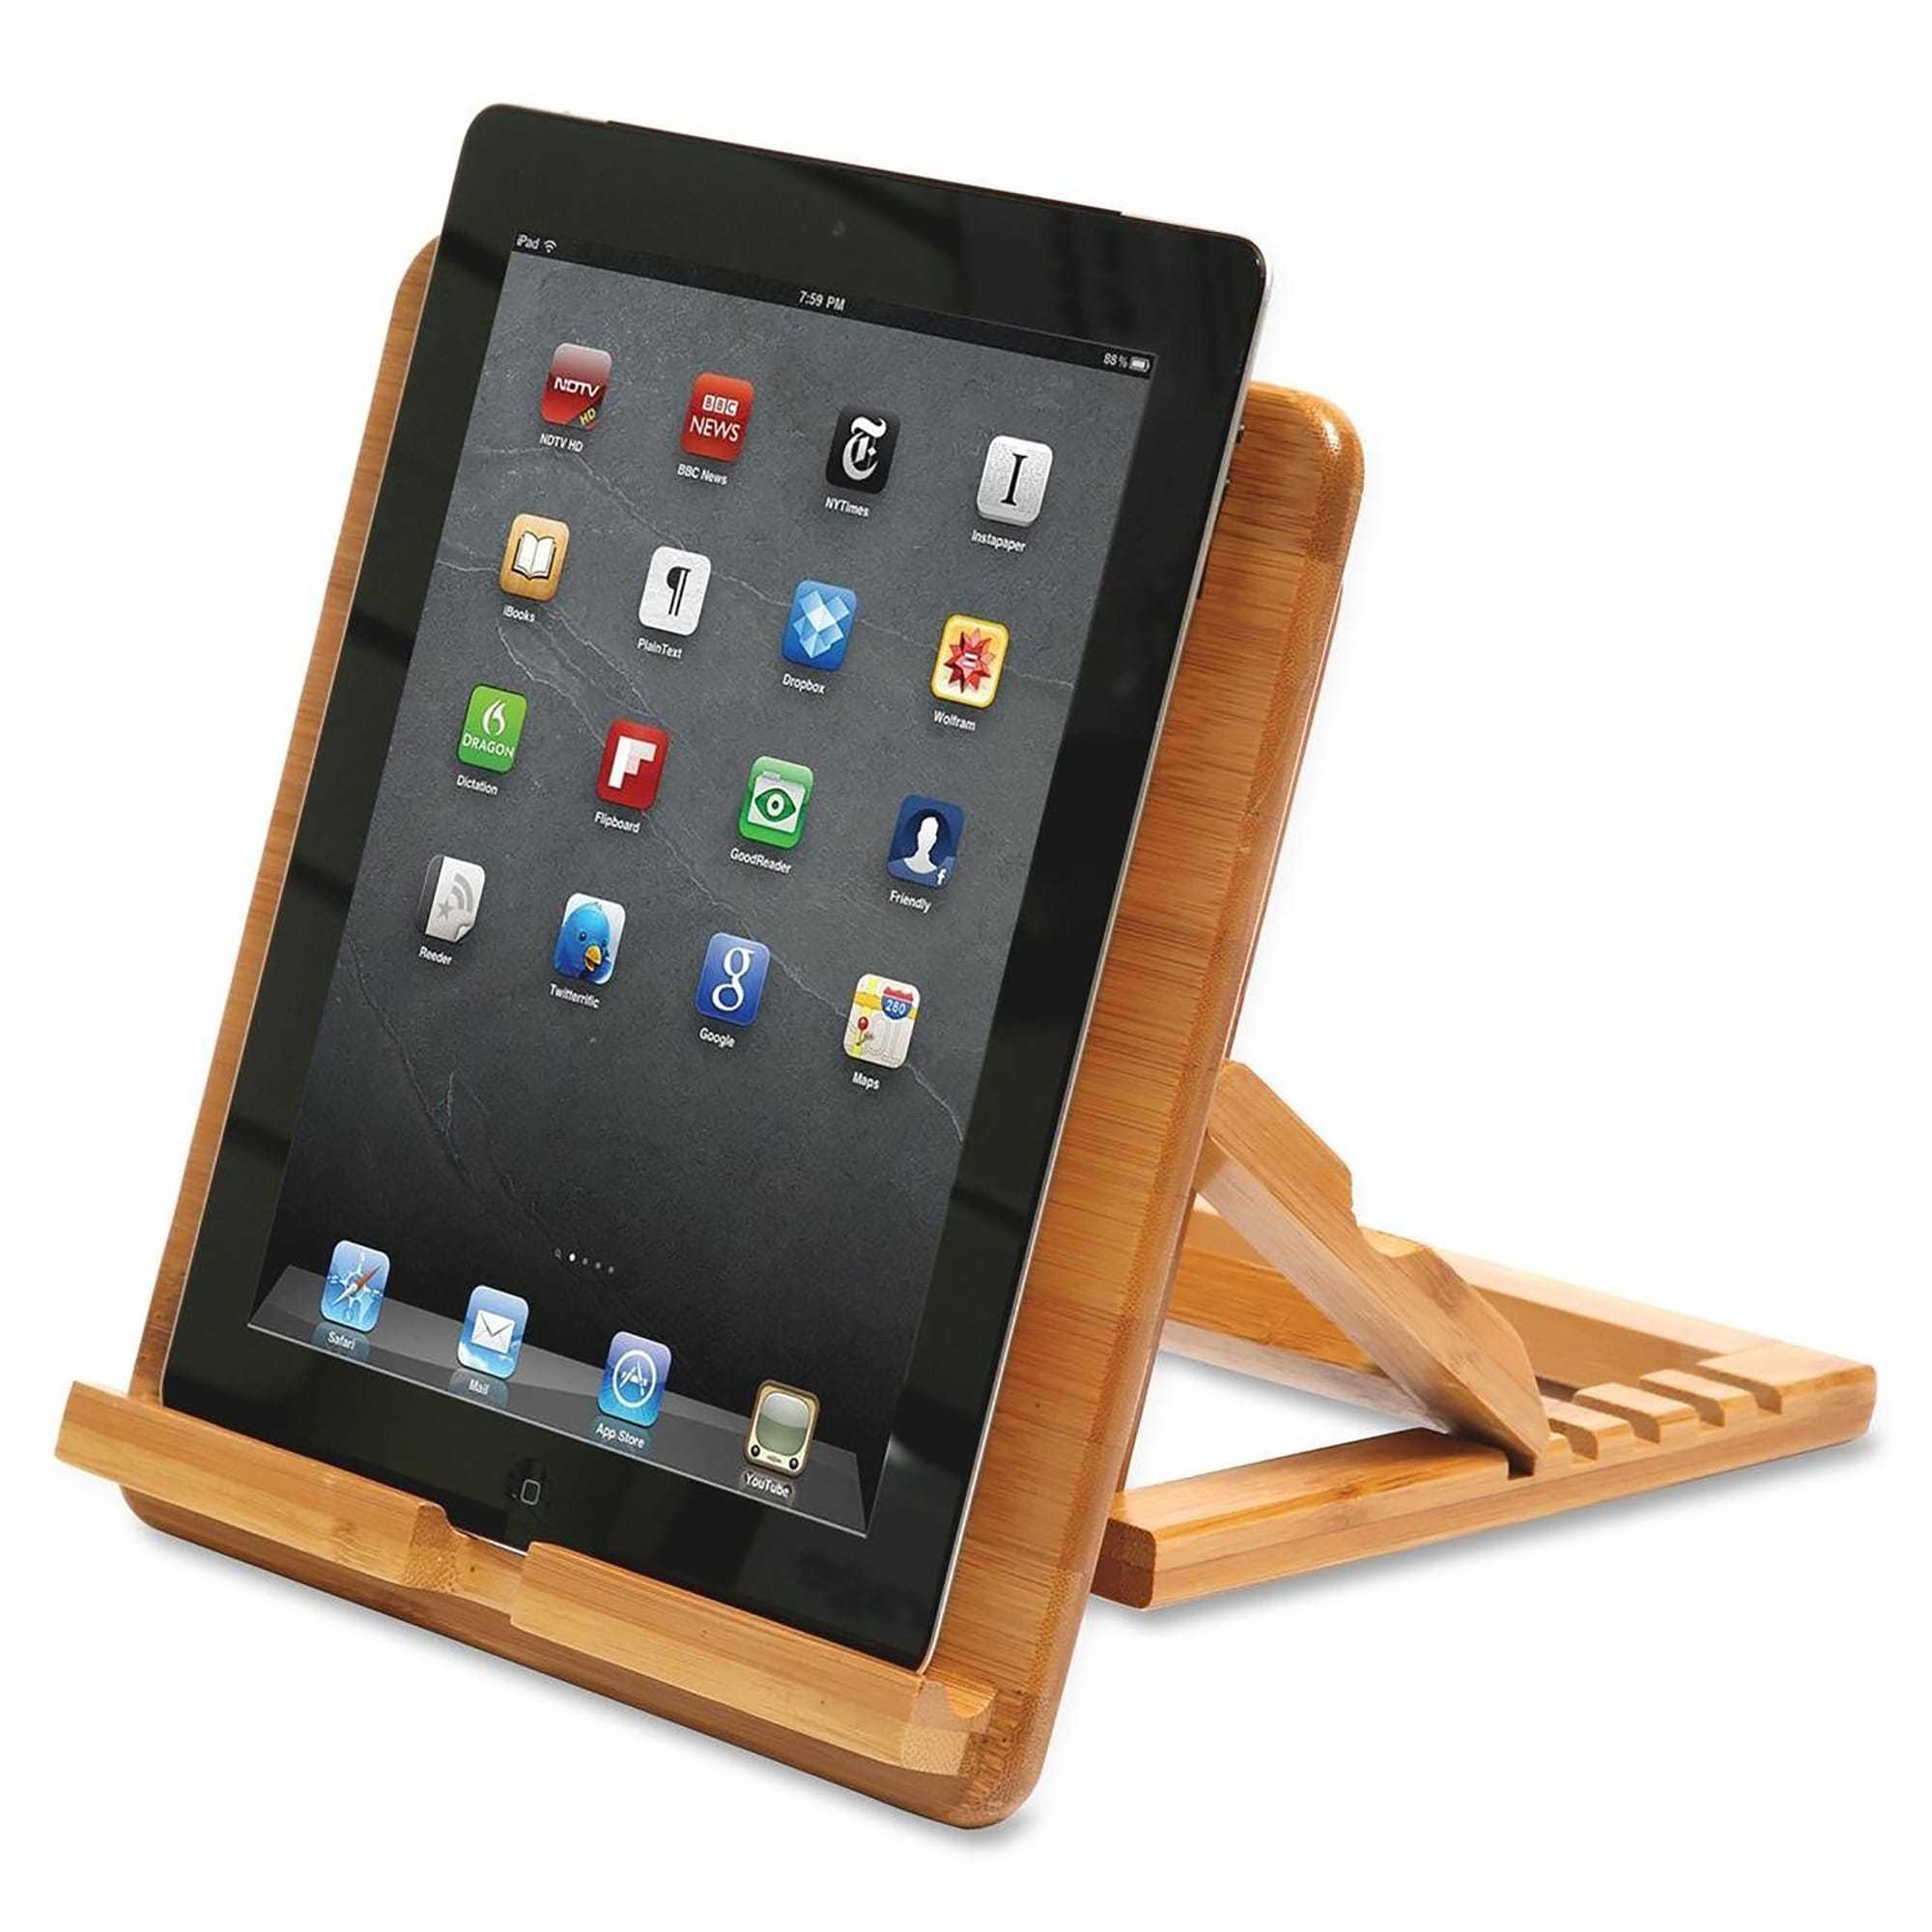 ... Qi Bamboo Kitchen Tablet IPad Cookbook Recipe Book Holder Stand (10426)  ...